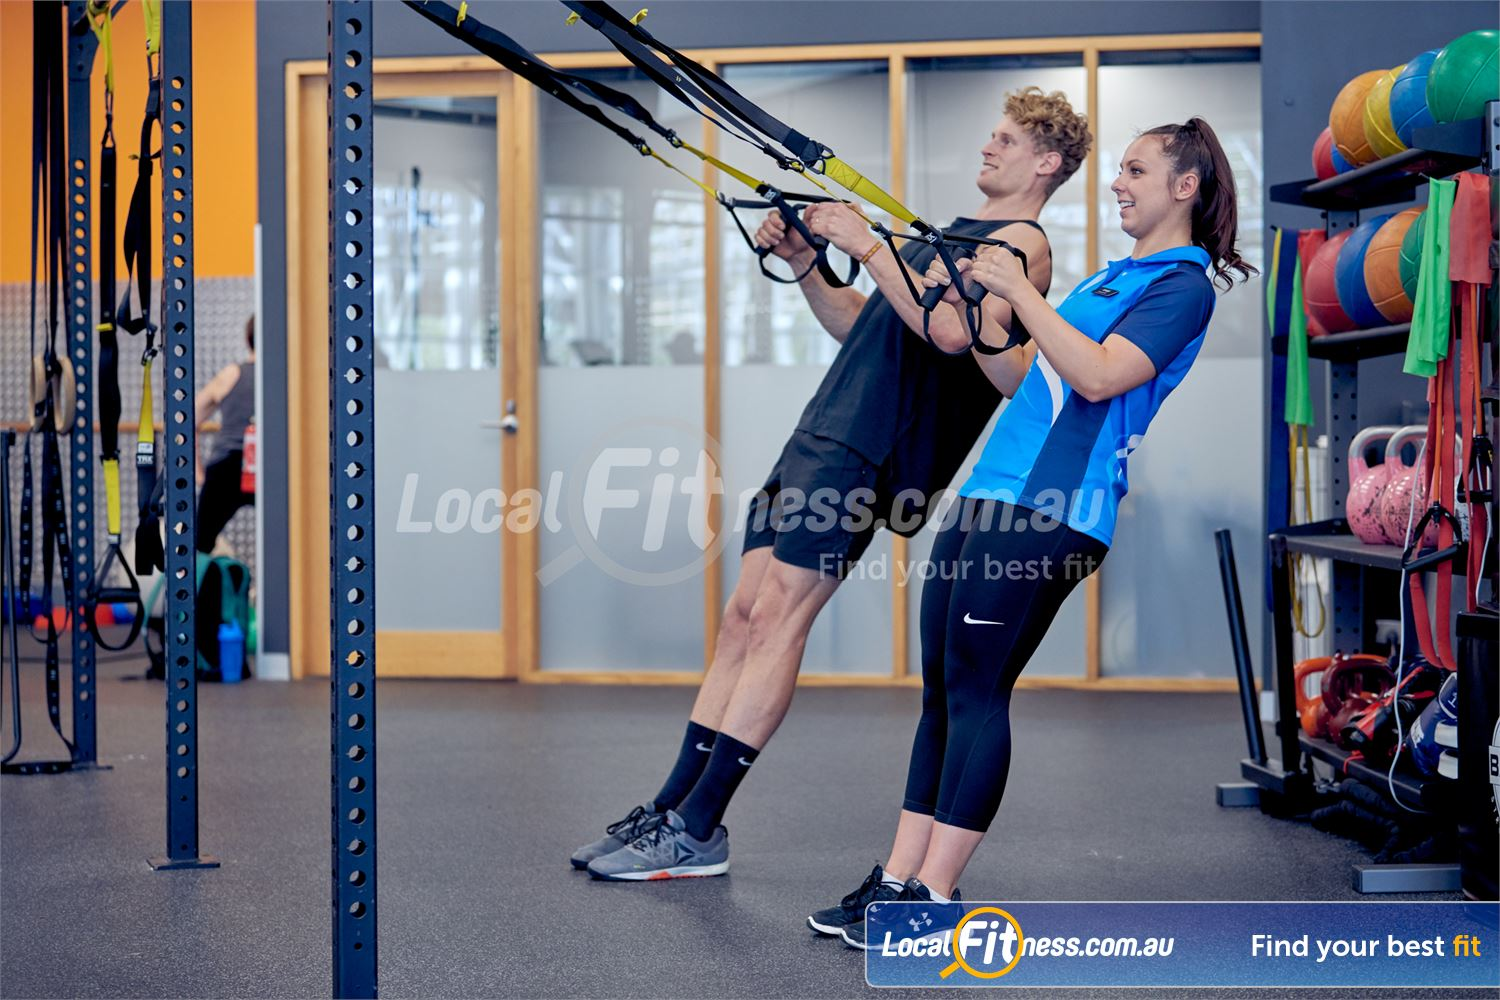 Eltham Leisure Centre Near North Warrandyte Work your core and your stabilizers with TRX training in Eltham.